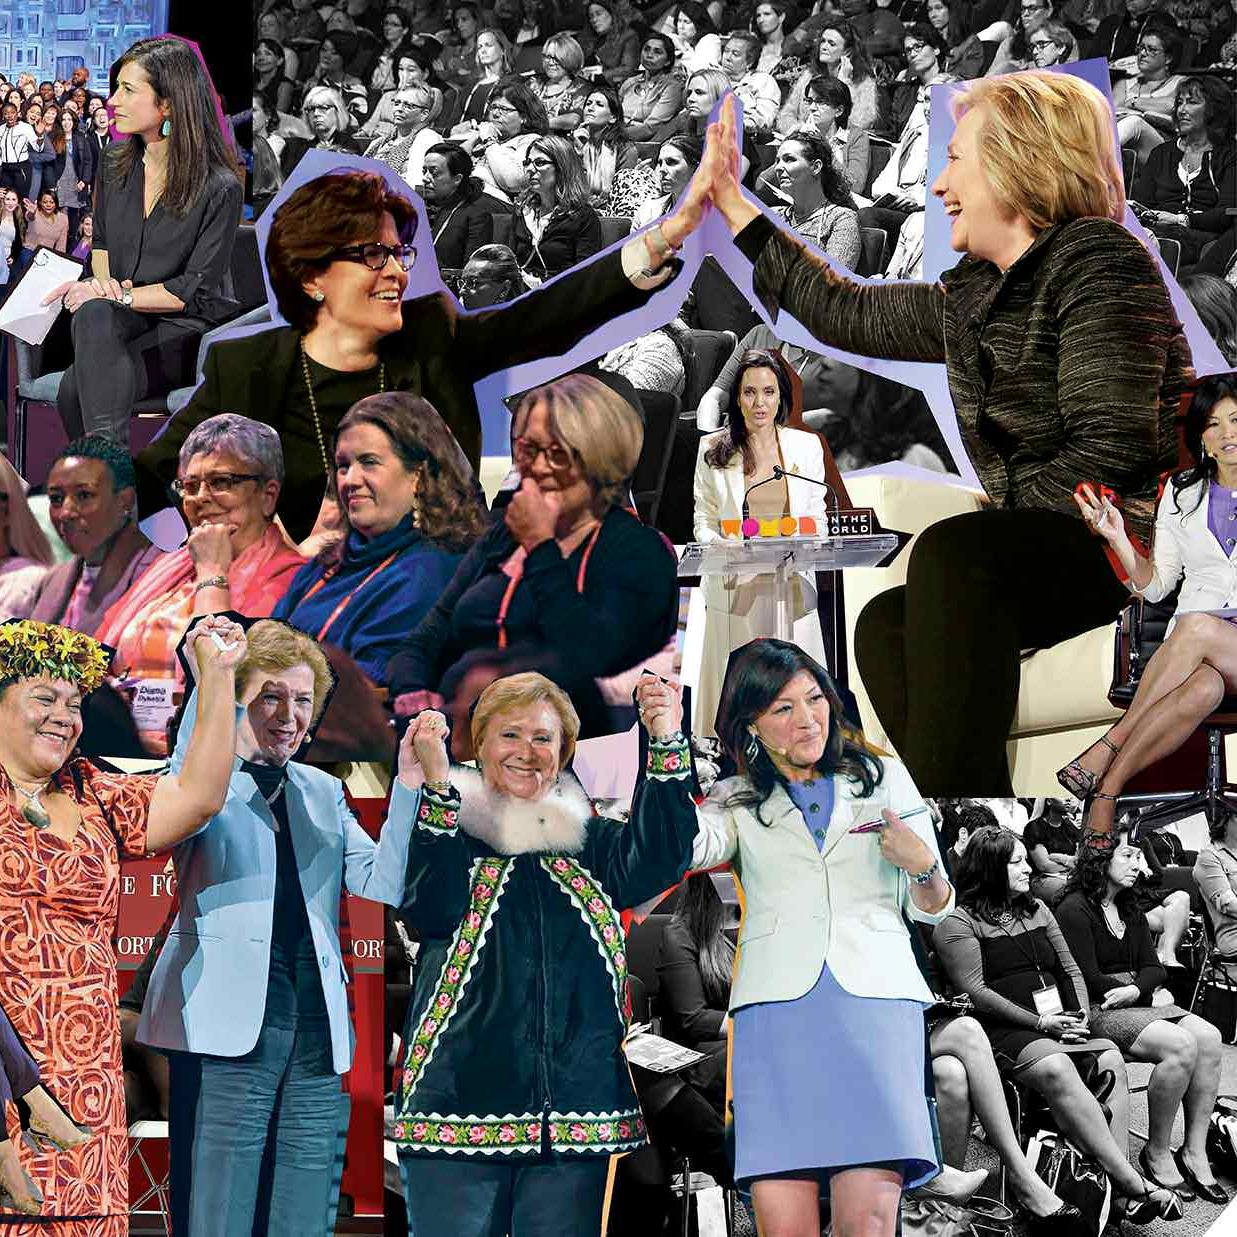 The Female Solidarity, Have-It-All, Feel-Good Machine